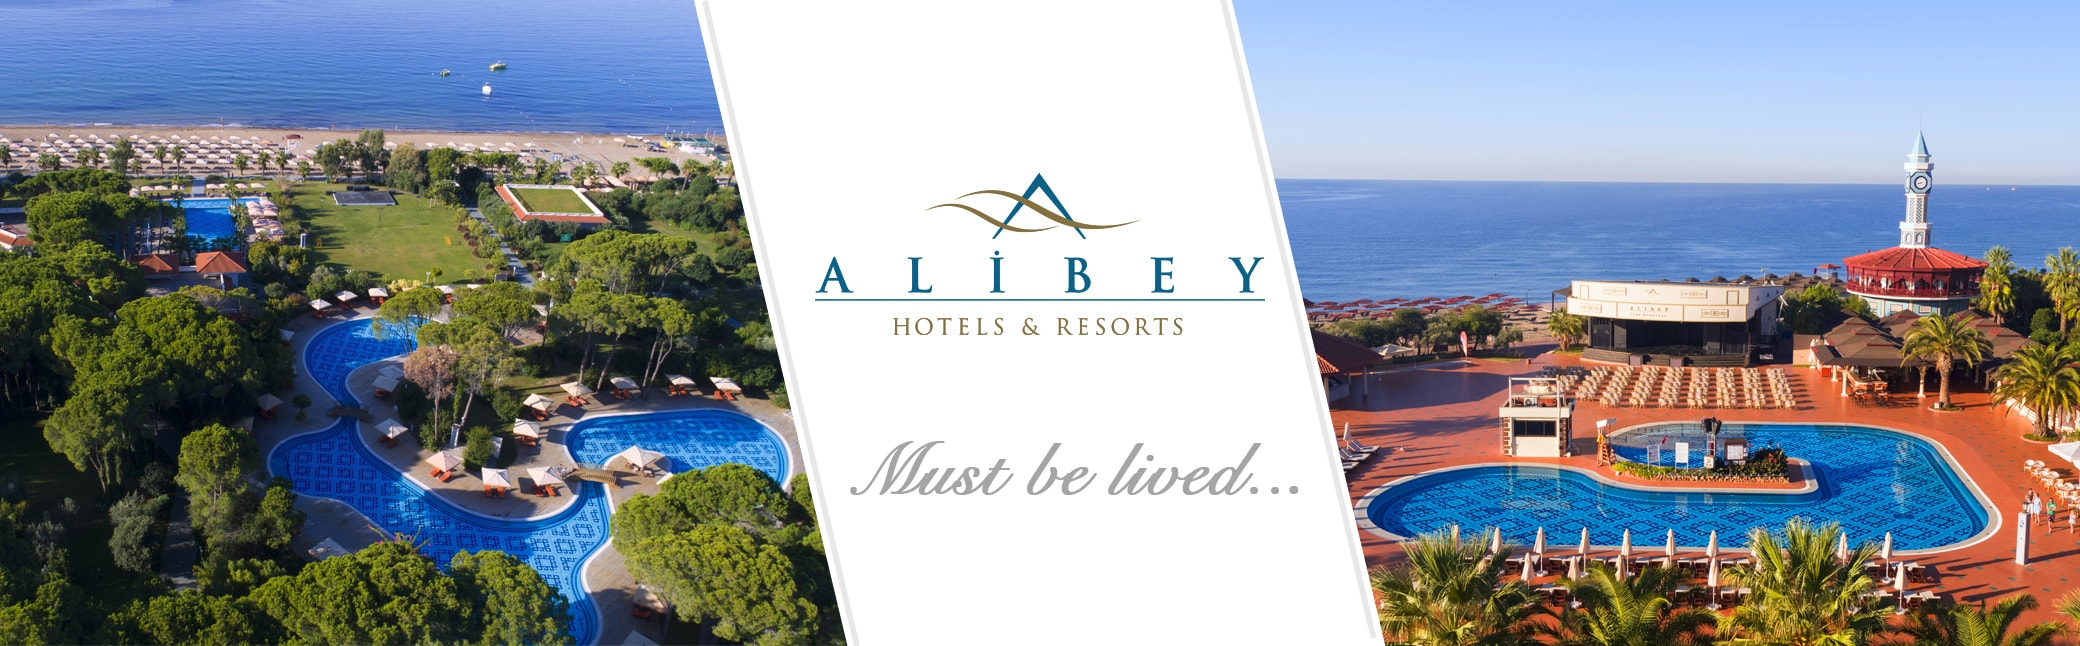 alibey hotels & resort